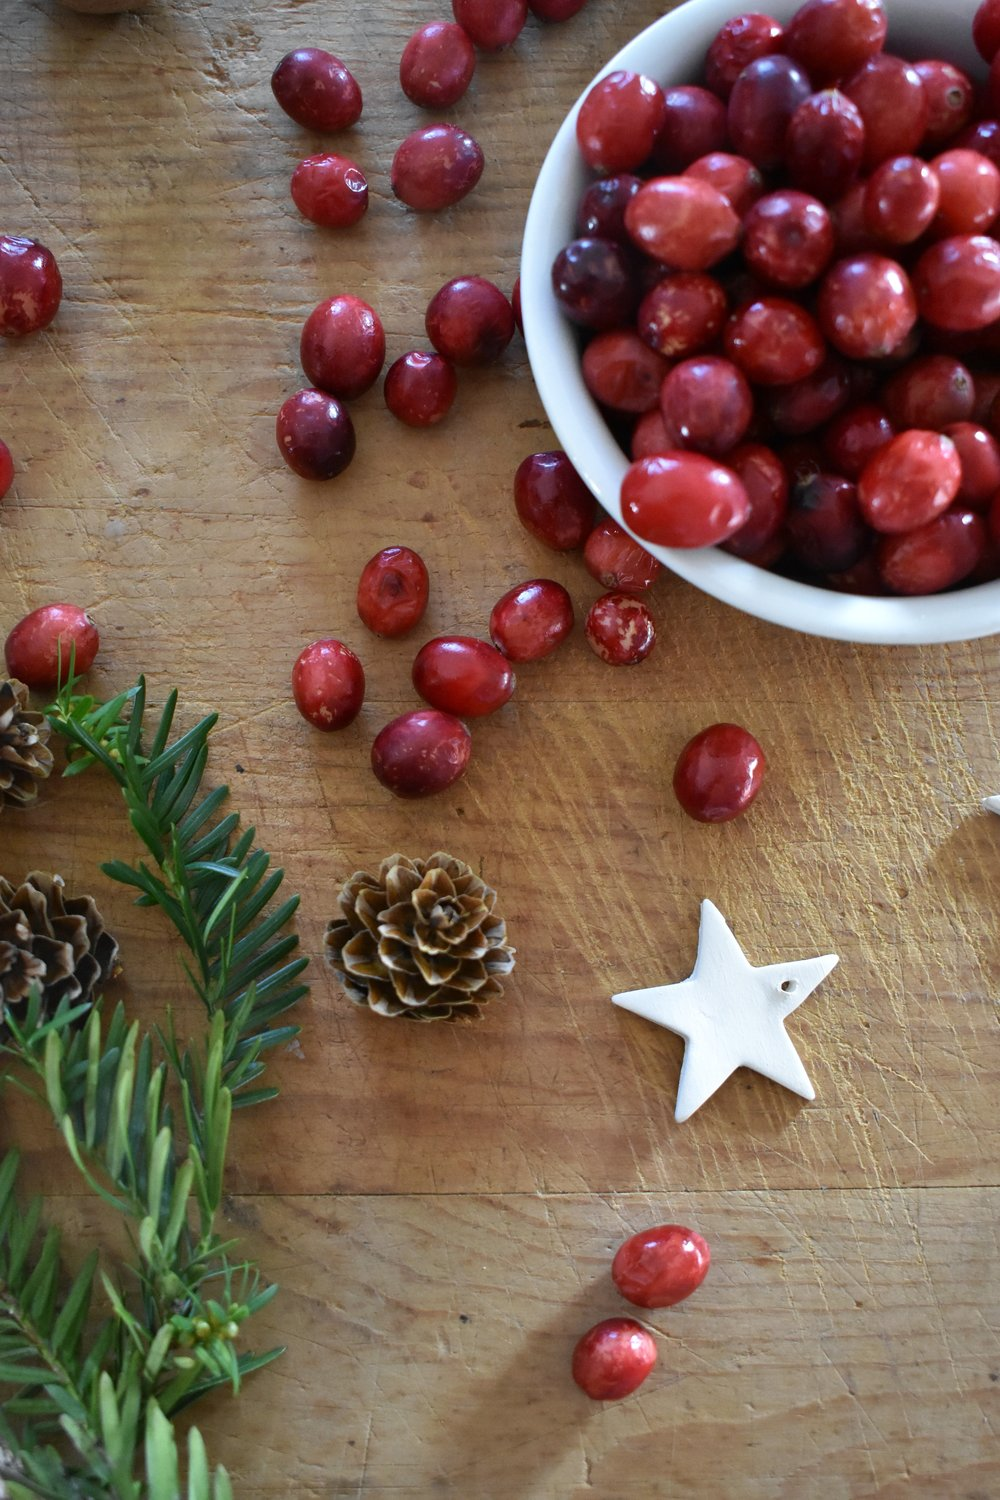 How to dry cranberries without a dehydrator and how to dry cranberries in the oven